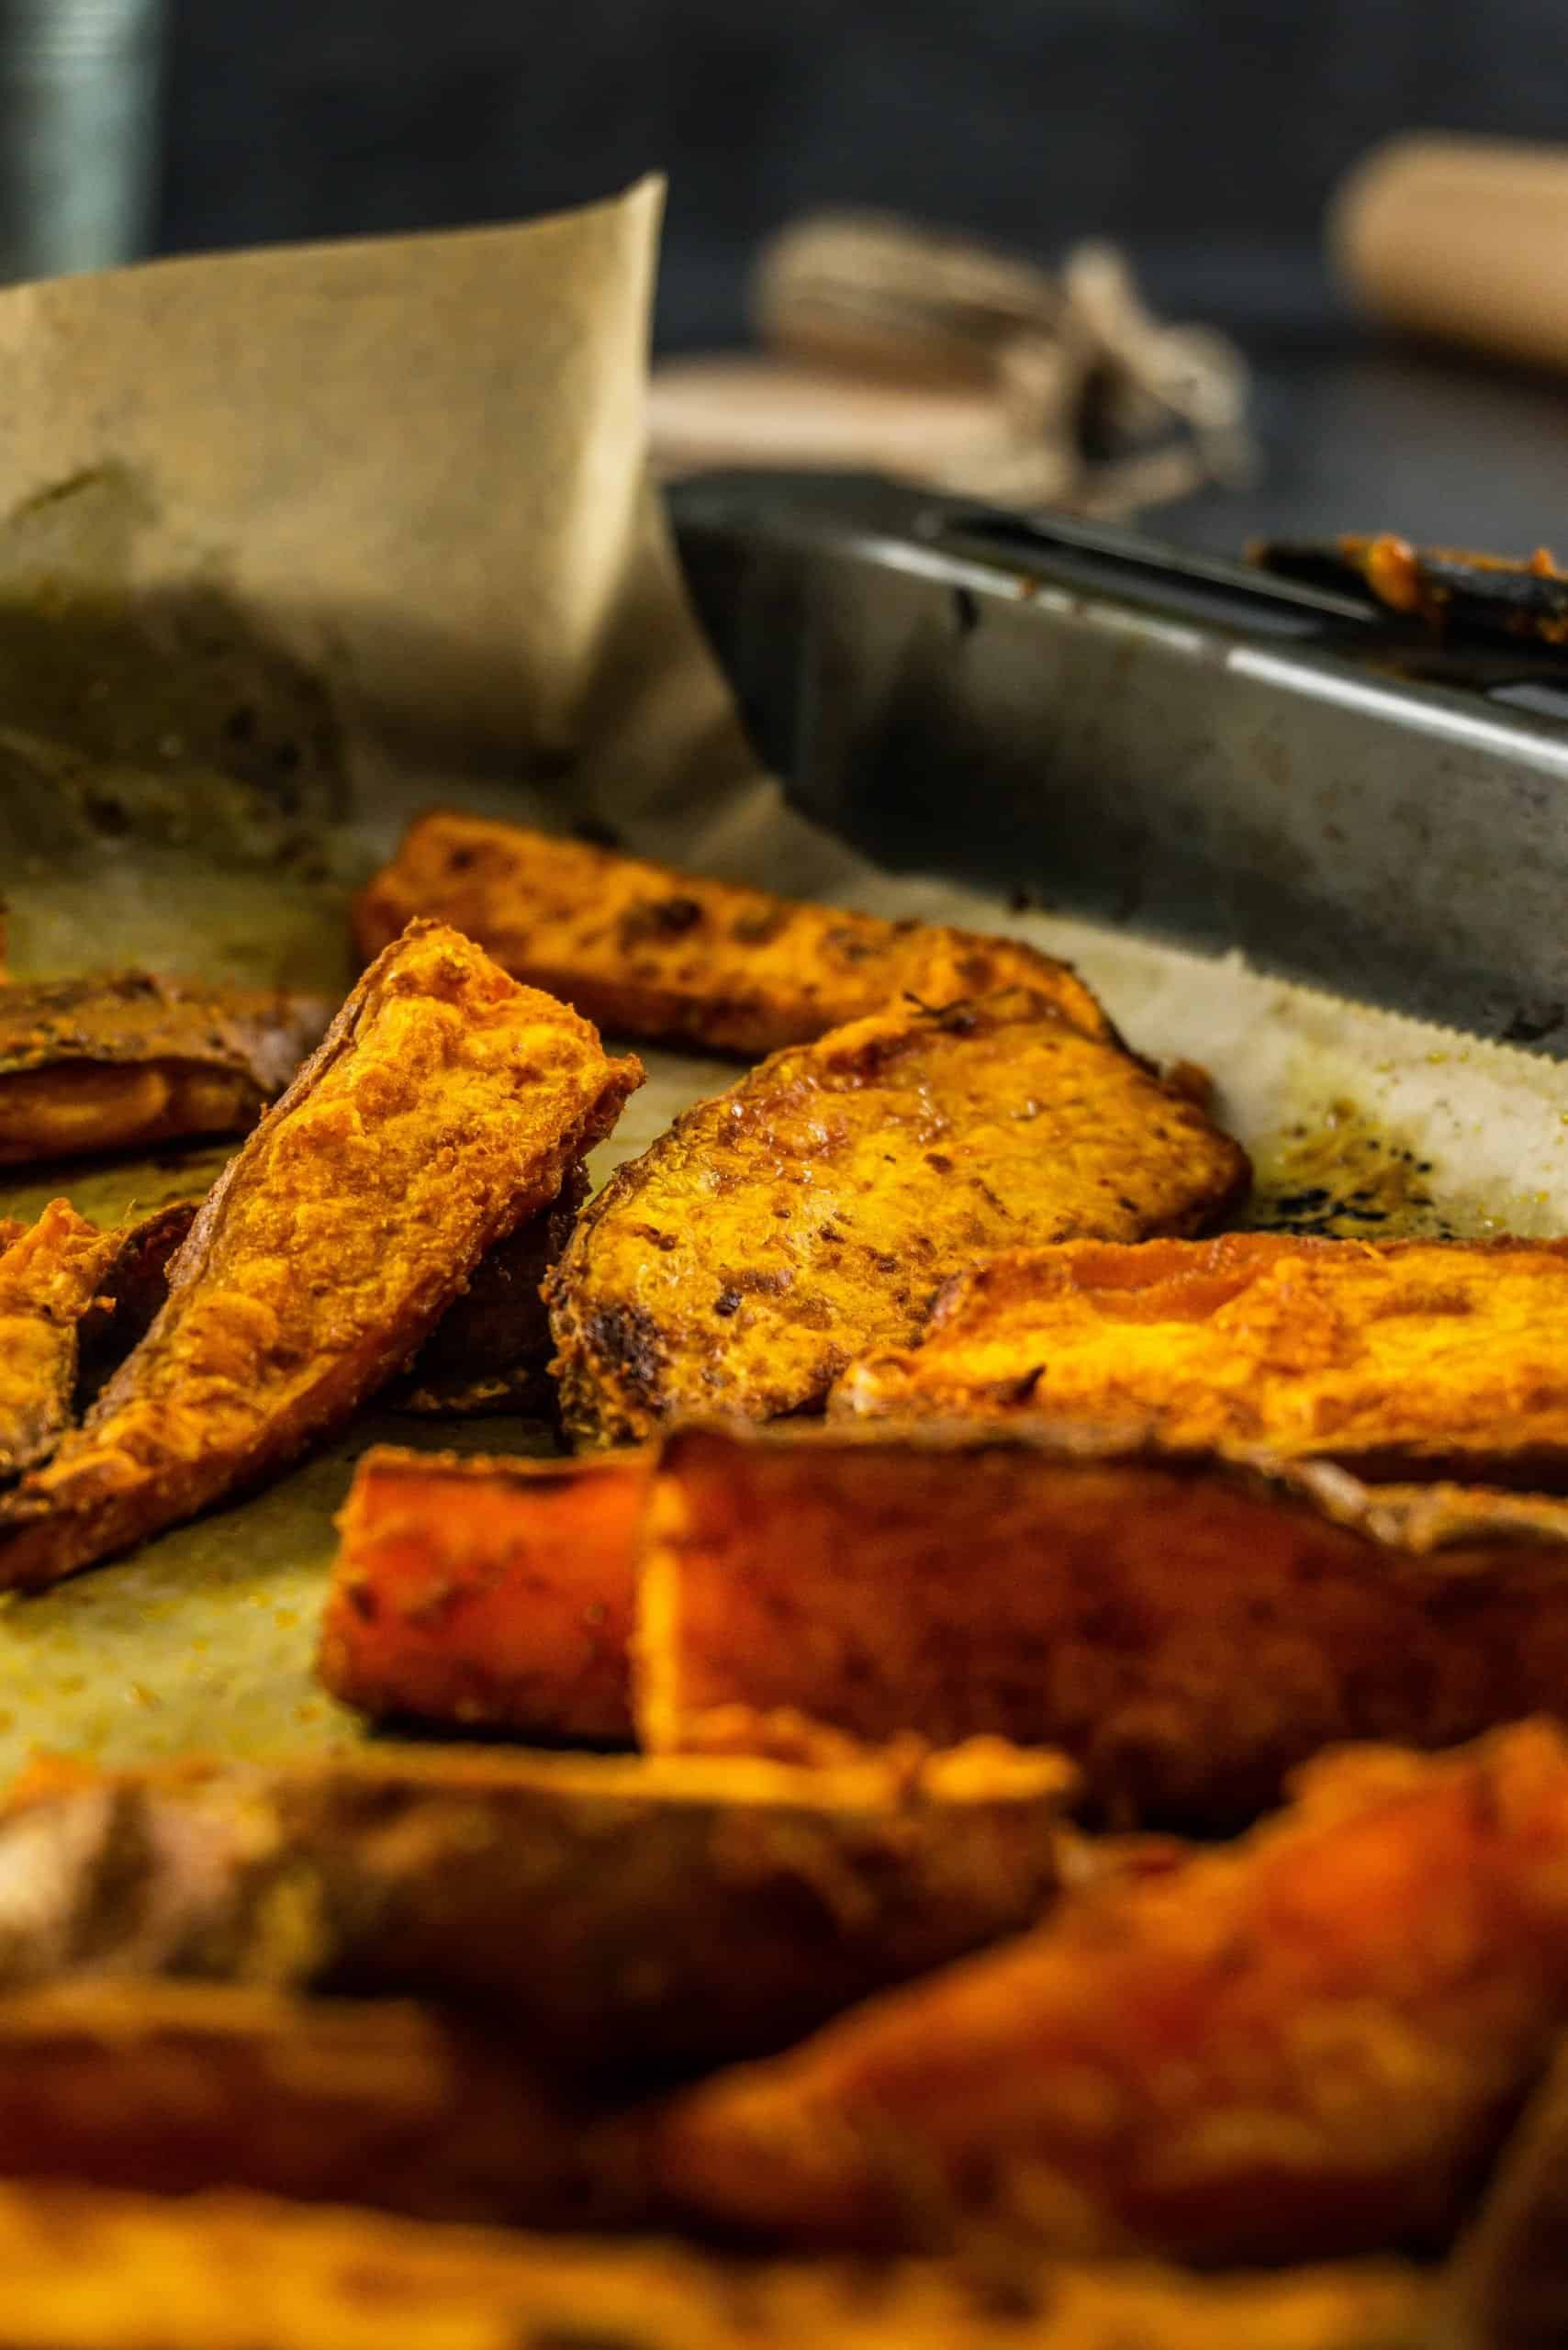 Sweet Potato Wedges on a baking tray after baking